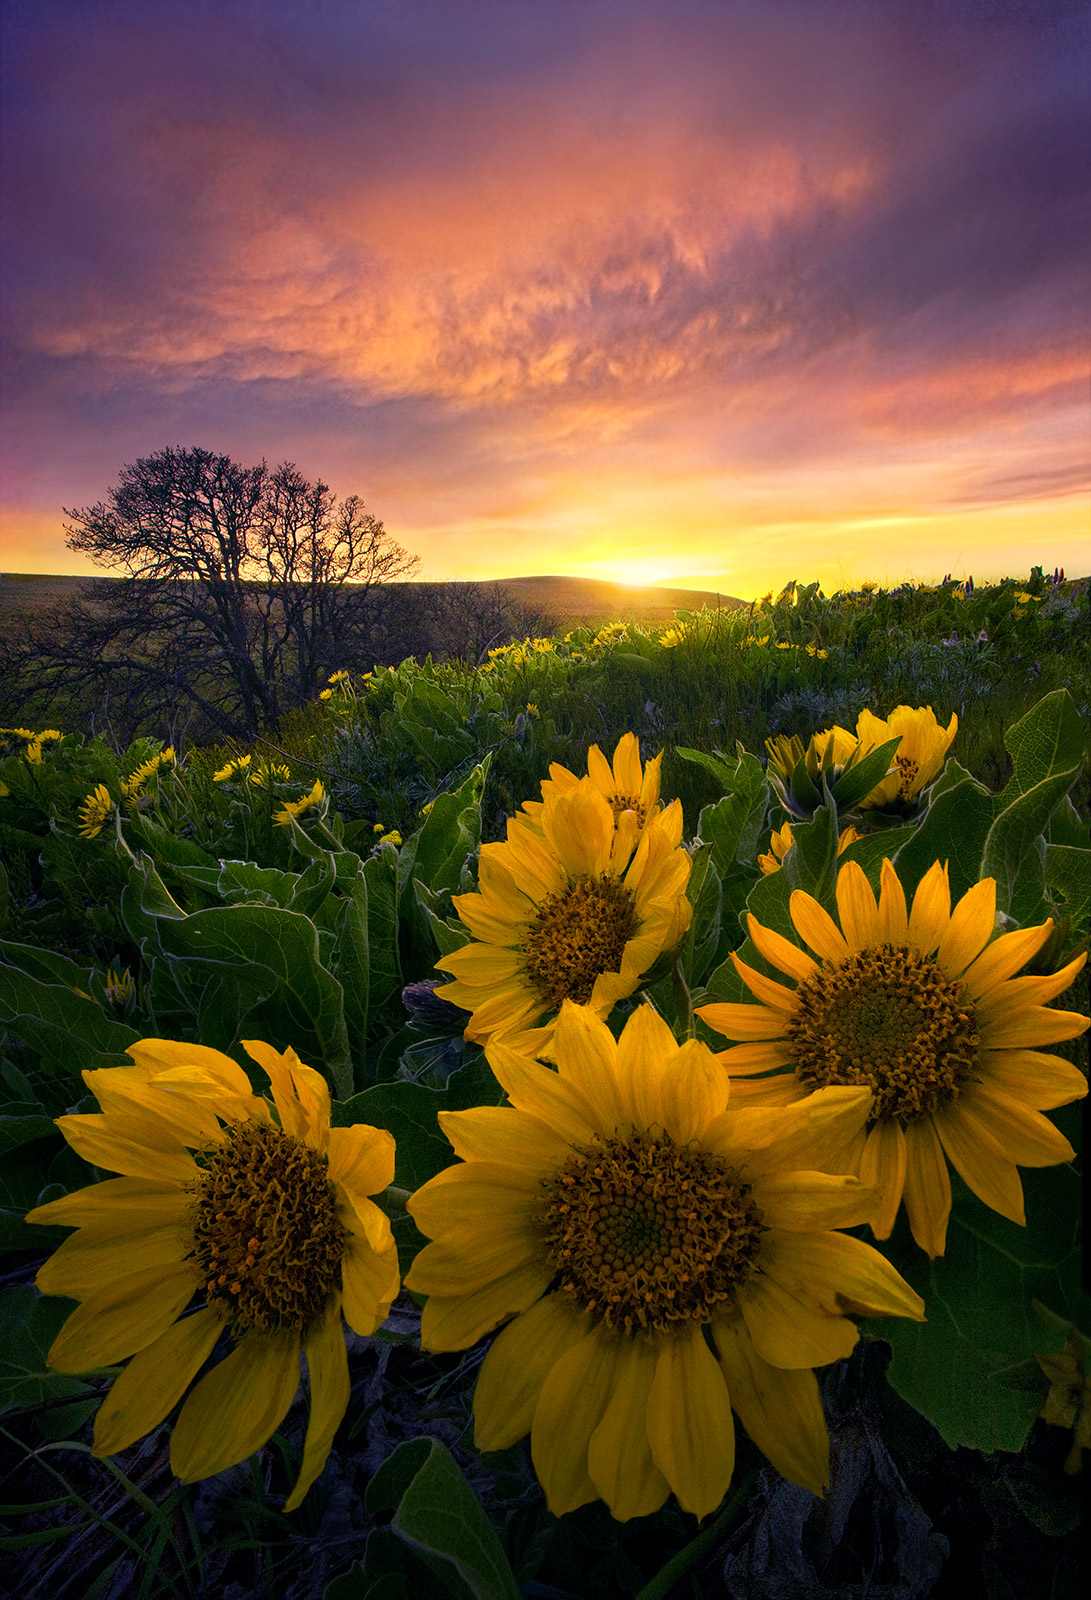 sunset, balsamroot, flower, fields, hills, washington, columbia, photo